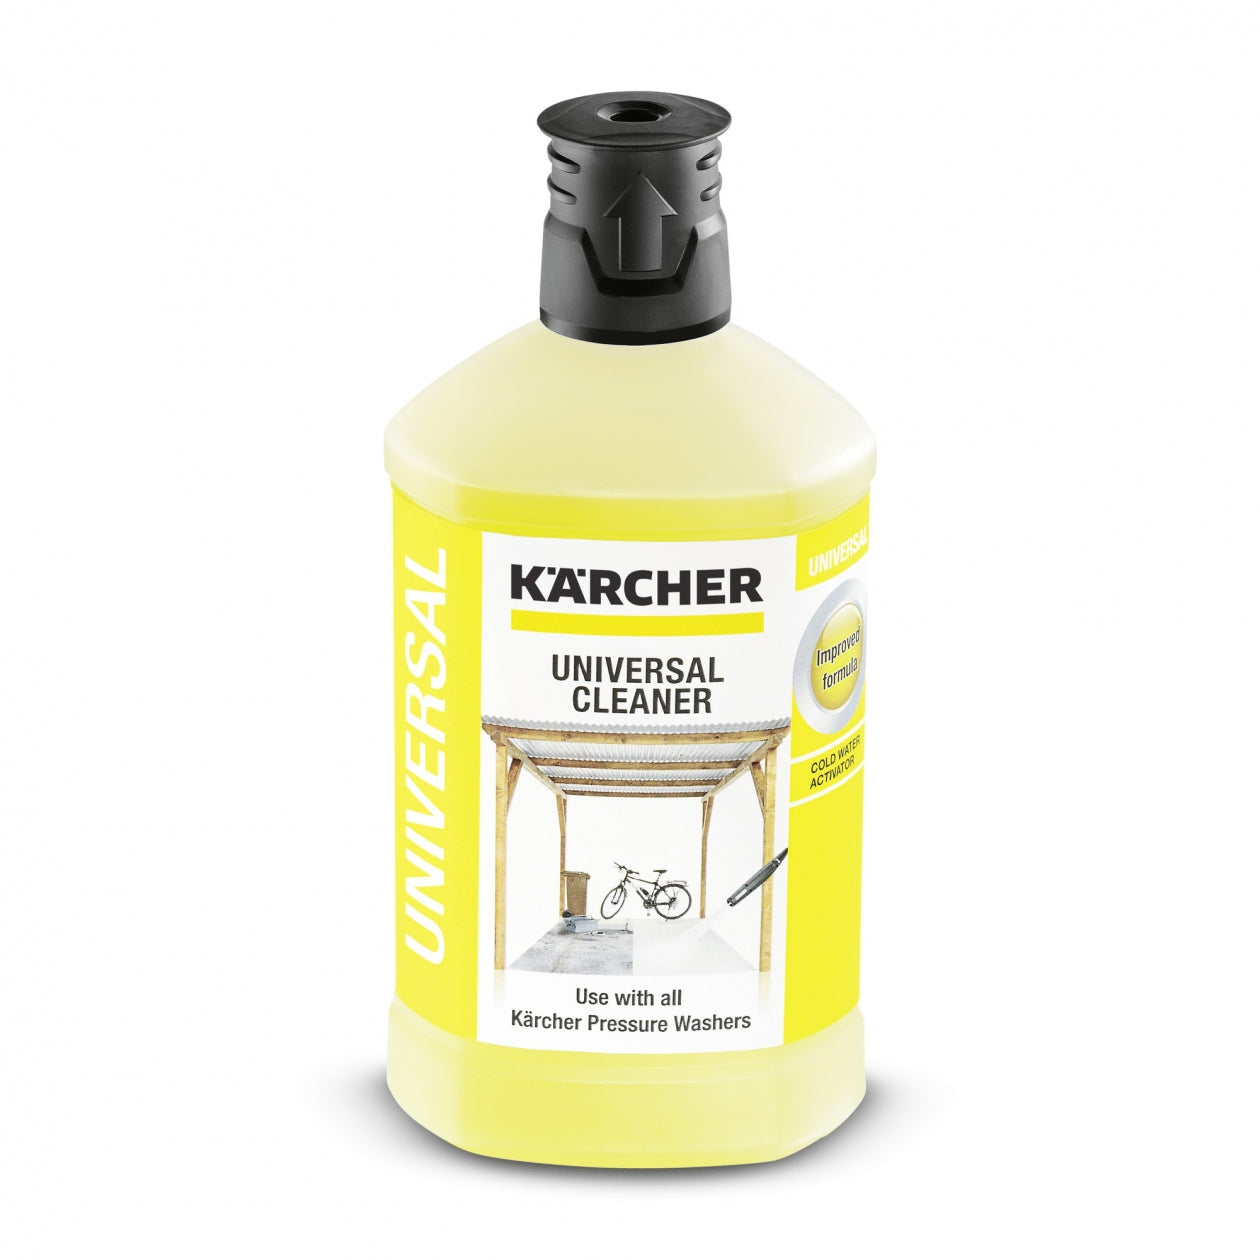 Karcher Universal Cleaner (1 Liter)